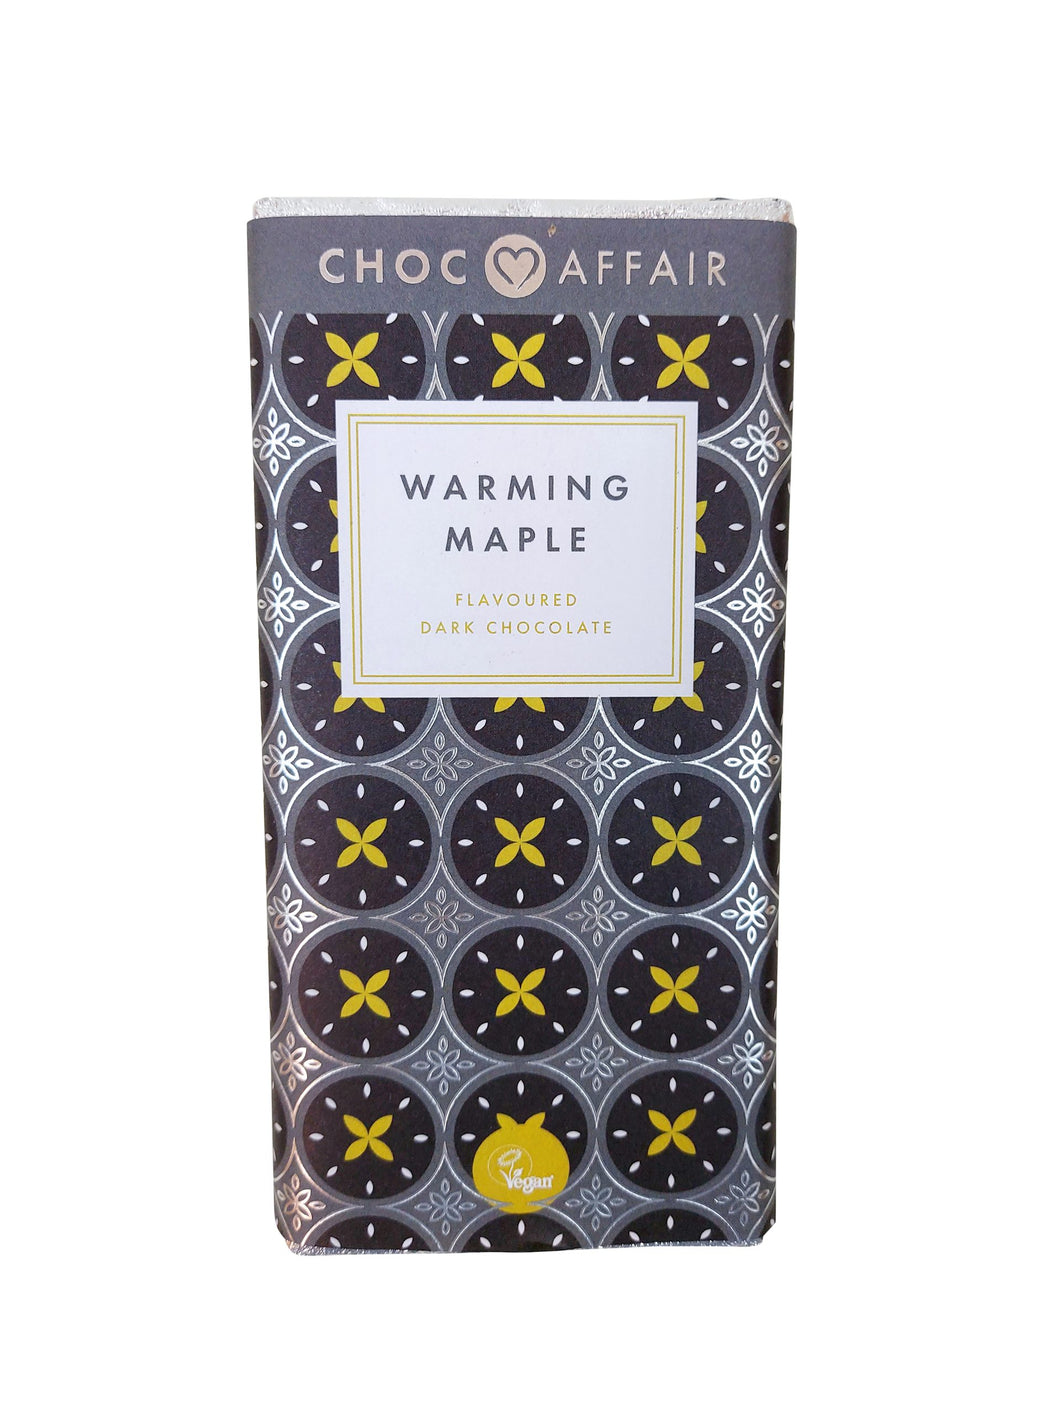 Warming Maple Handmade Vegan Chocolate Bar